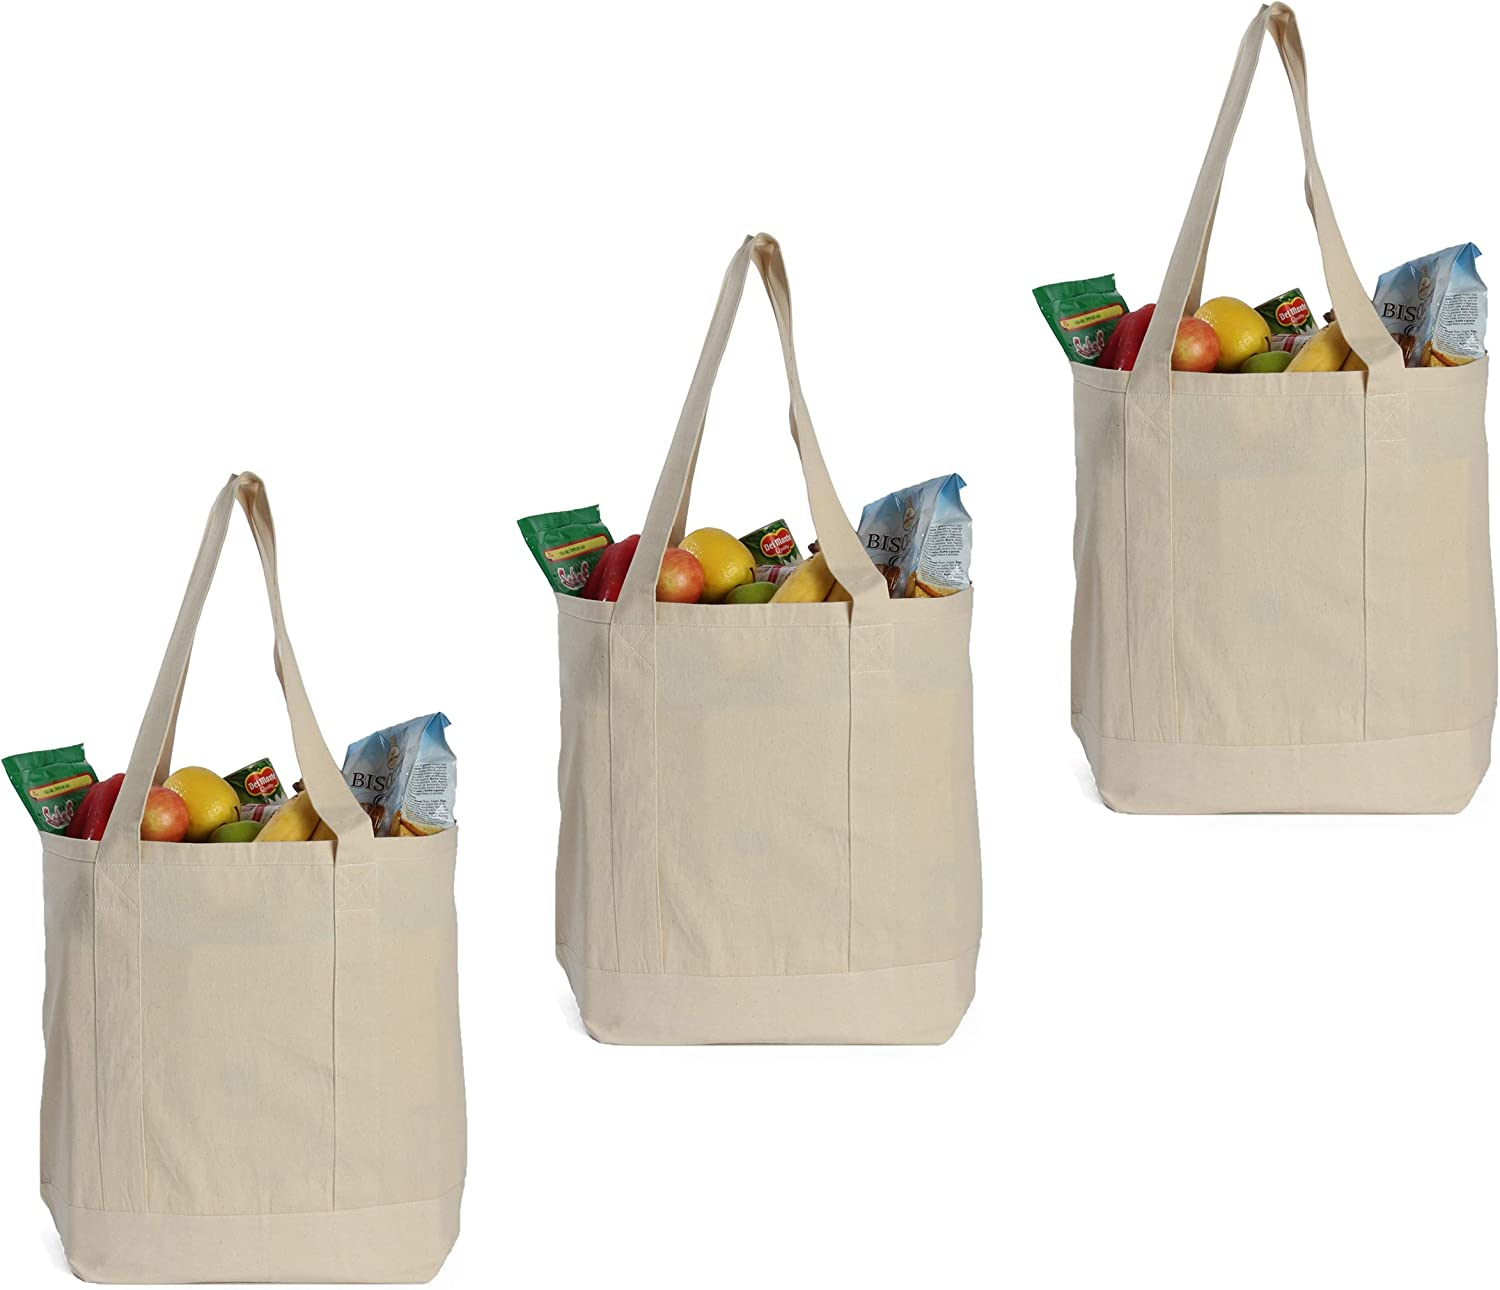 Amazon Com Earthwise Reusable Grocery Bags X Large 100 Cotton Canvas Shopping Craft Beach Cloth Tote With Handles Biodegradable Foldable And Eco Friendly Washable 20 X 16 3 Pack Kitchen Dining